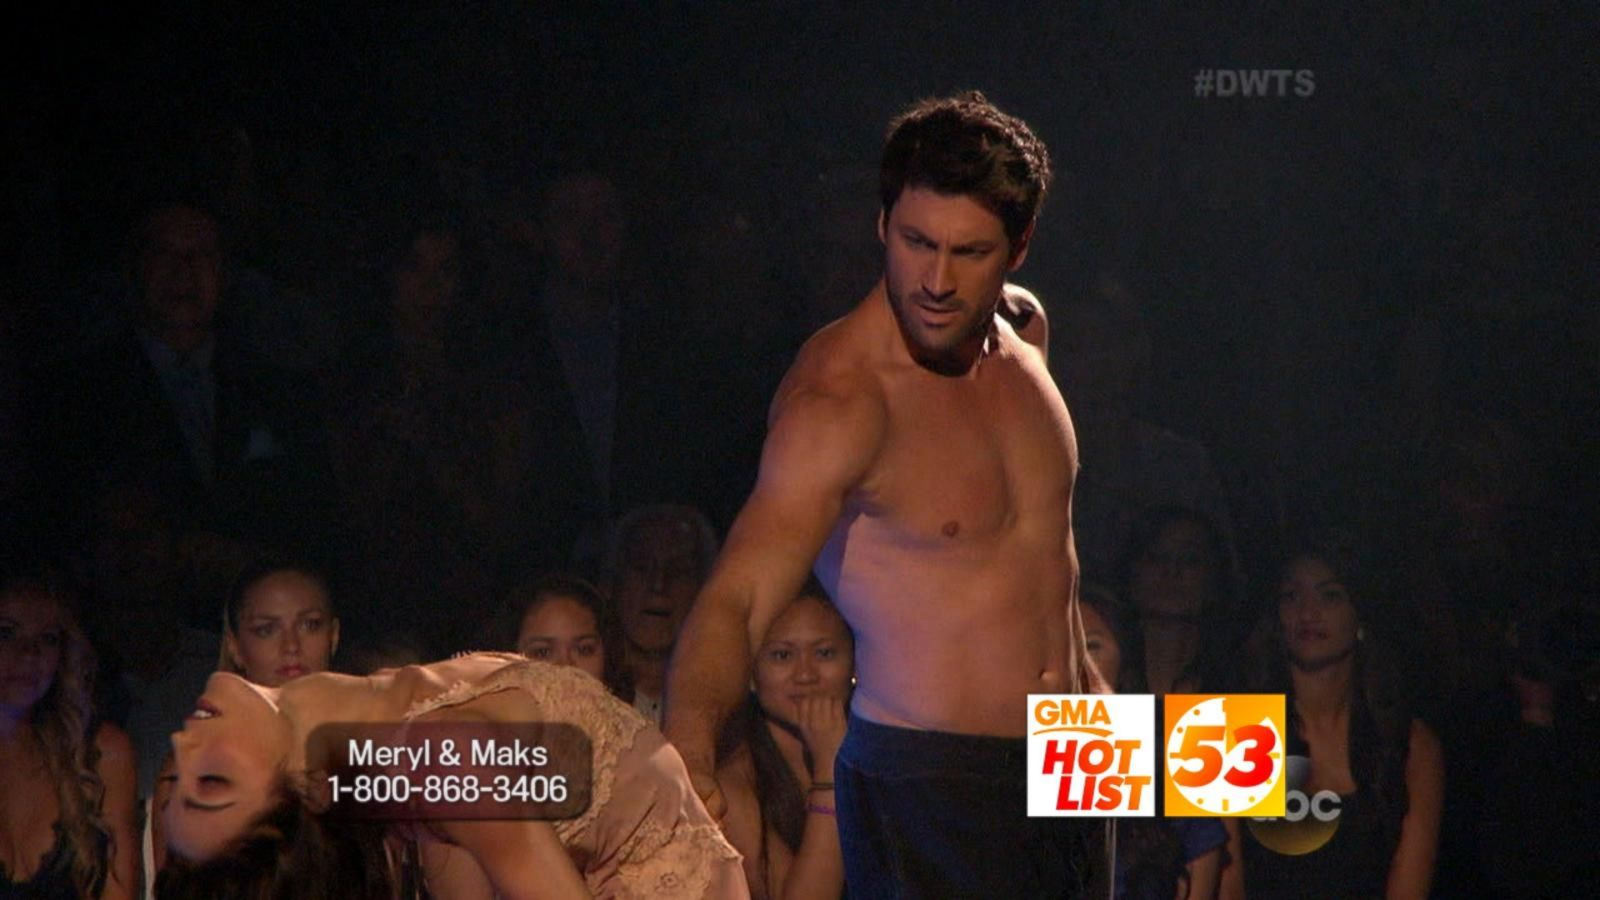 VIDEO: 'GMA' Hot List: How to Game-ify Kids' Fitness, and Maks Is Back on 'DWTS'